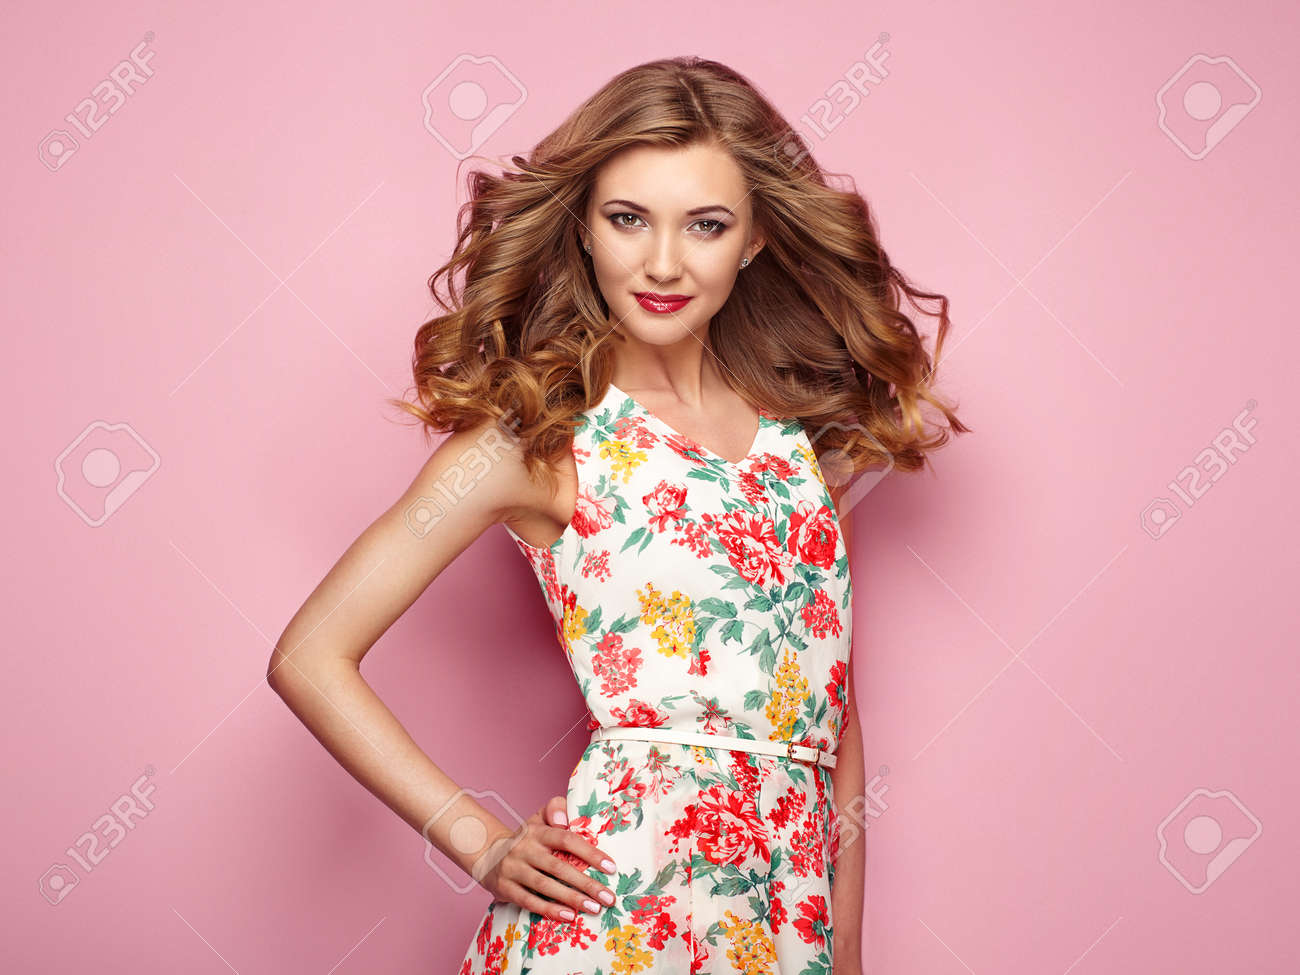 Blonde young woman in floral spring summer dress. Girl posing on a pink background. Summer floral outfit. Stylish wavy hairstyle. Fashion photo. Blonde lady - 76500417